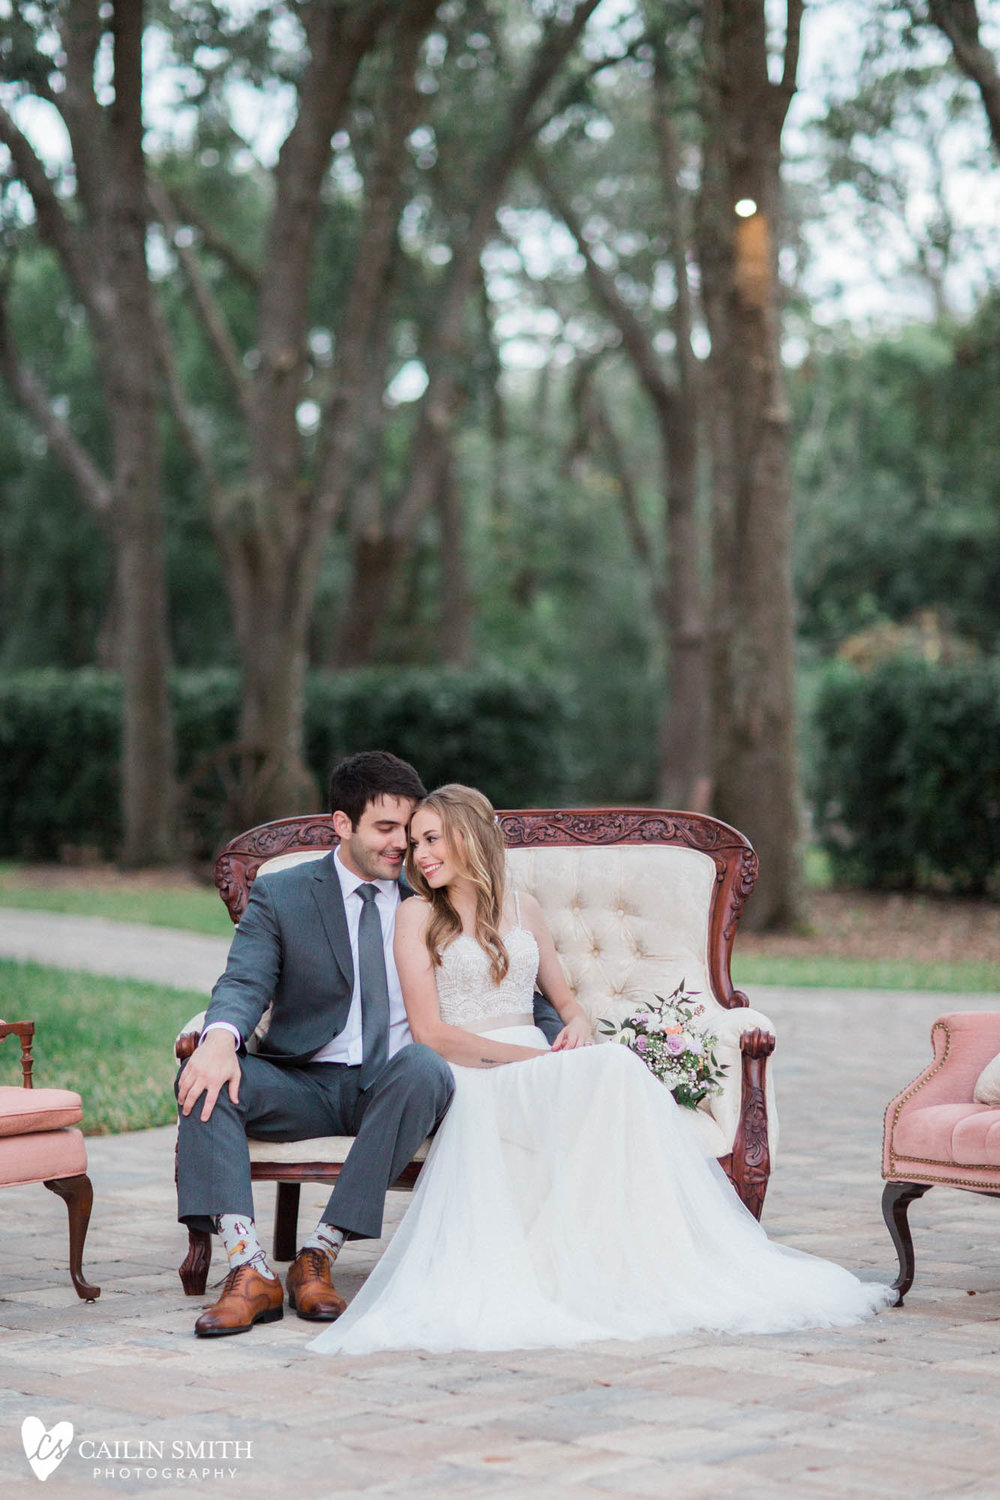 Sylvia_Anthony_Bowing_Oaks_Plantation_Wedding_Photography_0083.jpg